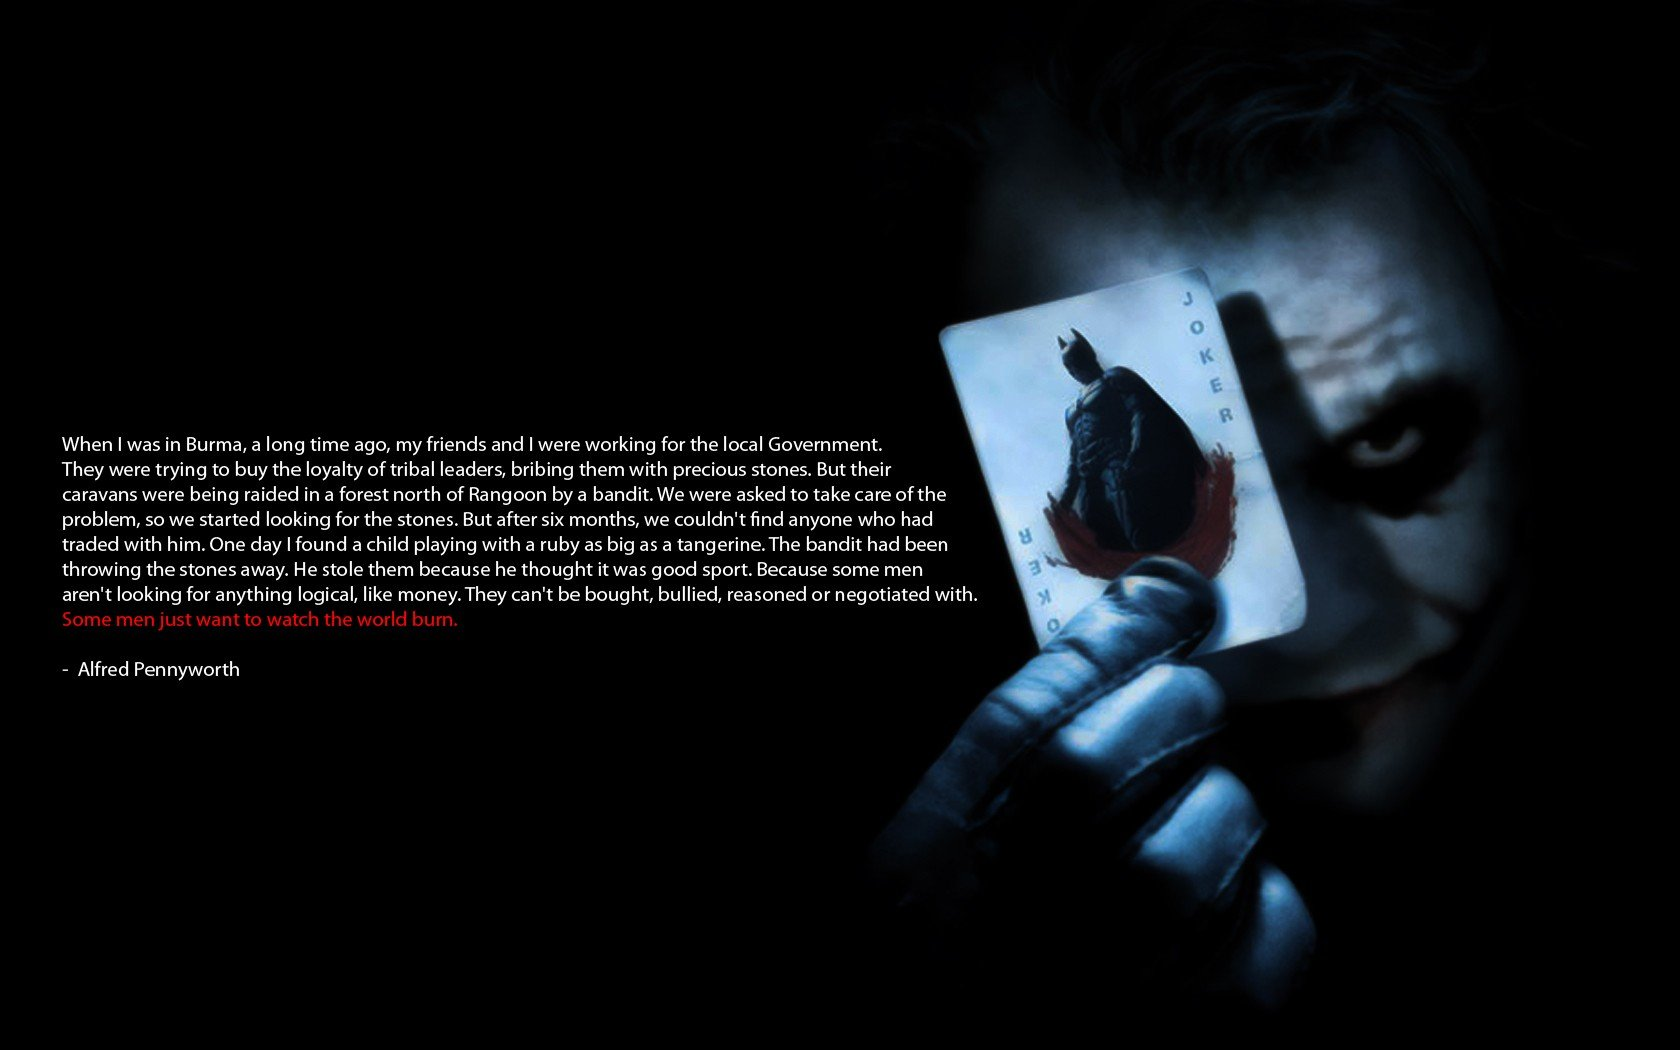 Joker Black Background Movies Quote Batman Hd Wallpapers Desktop And Mobile Images Photos